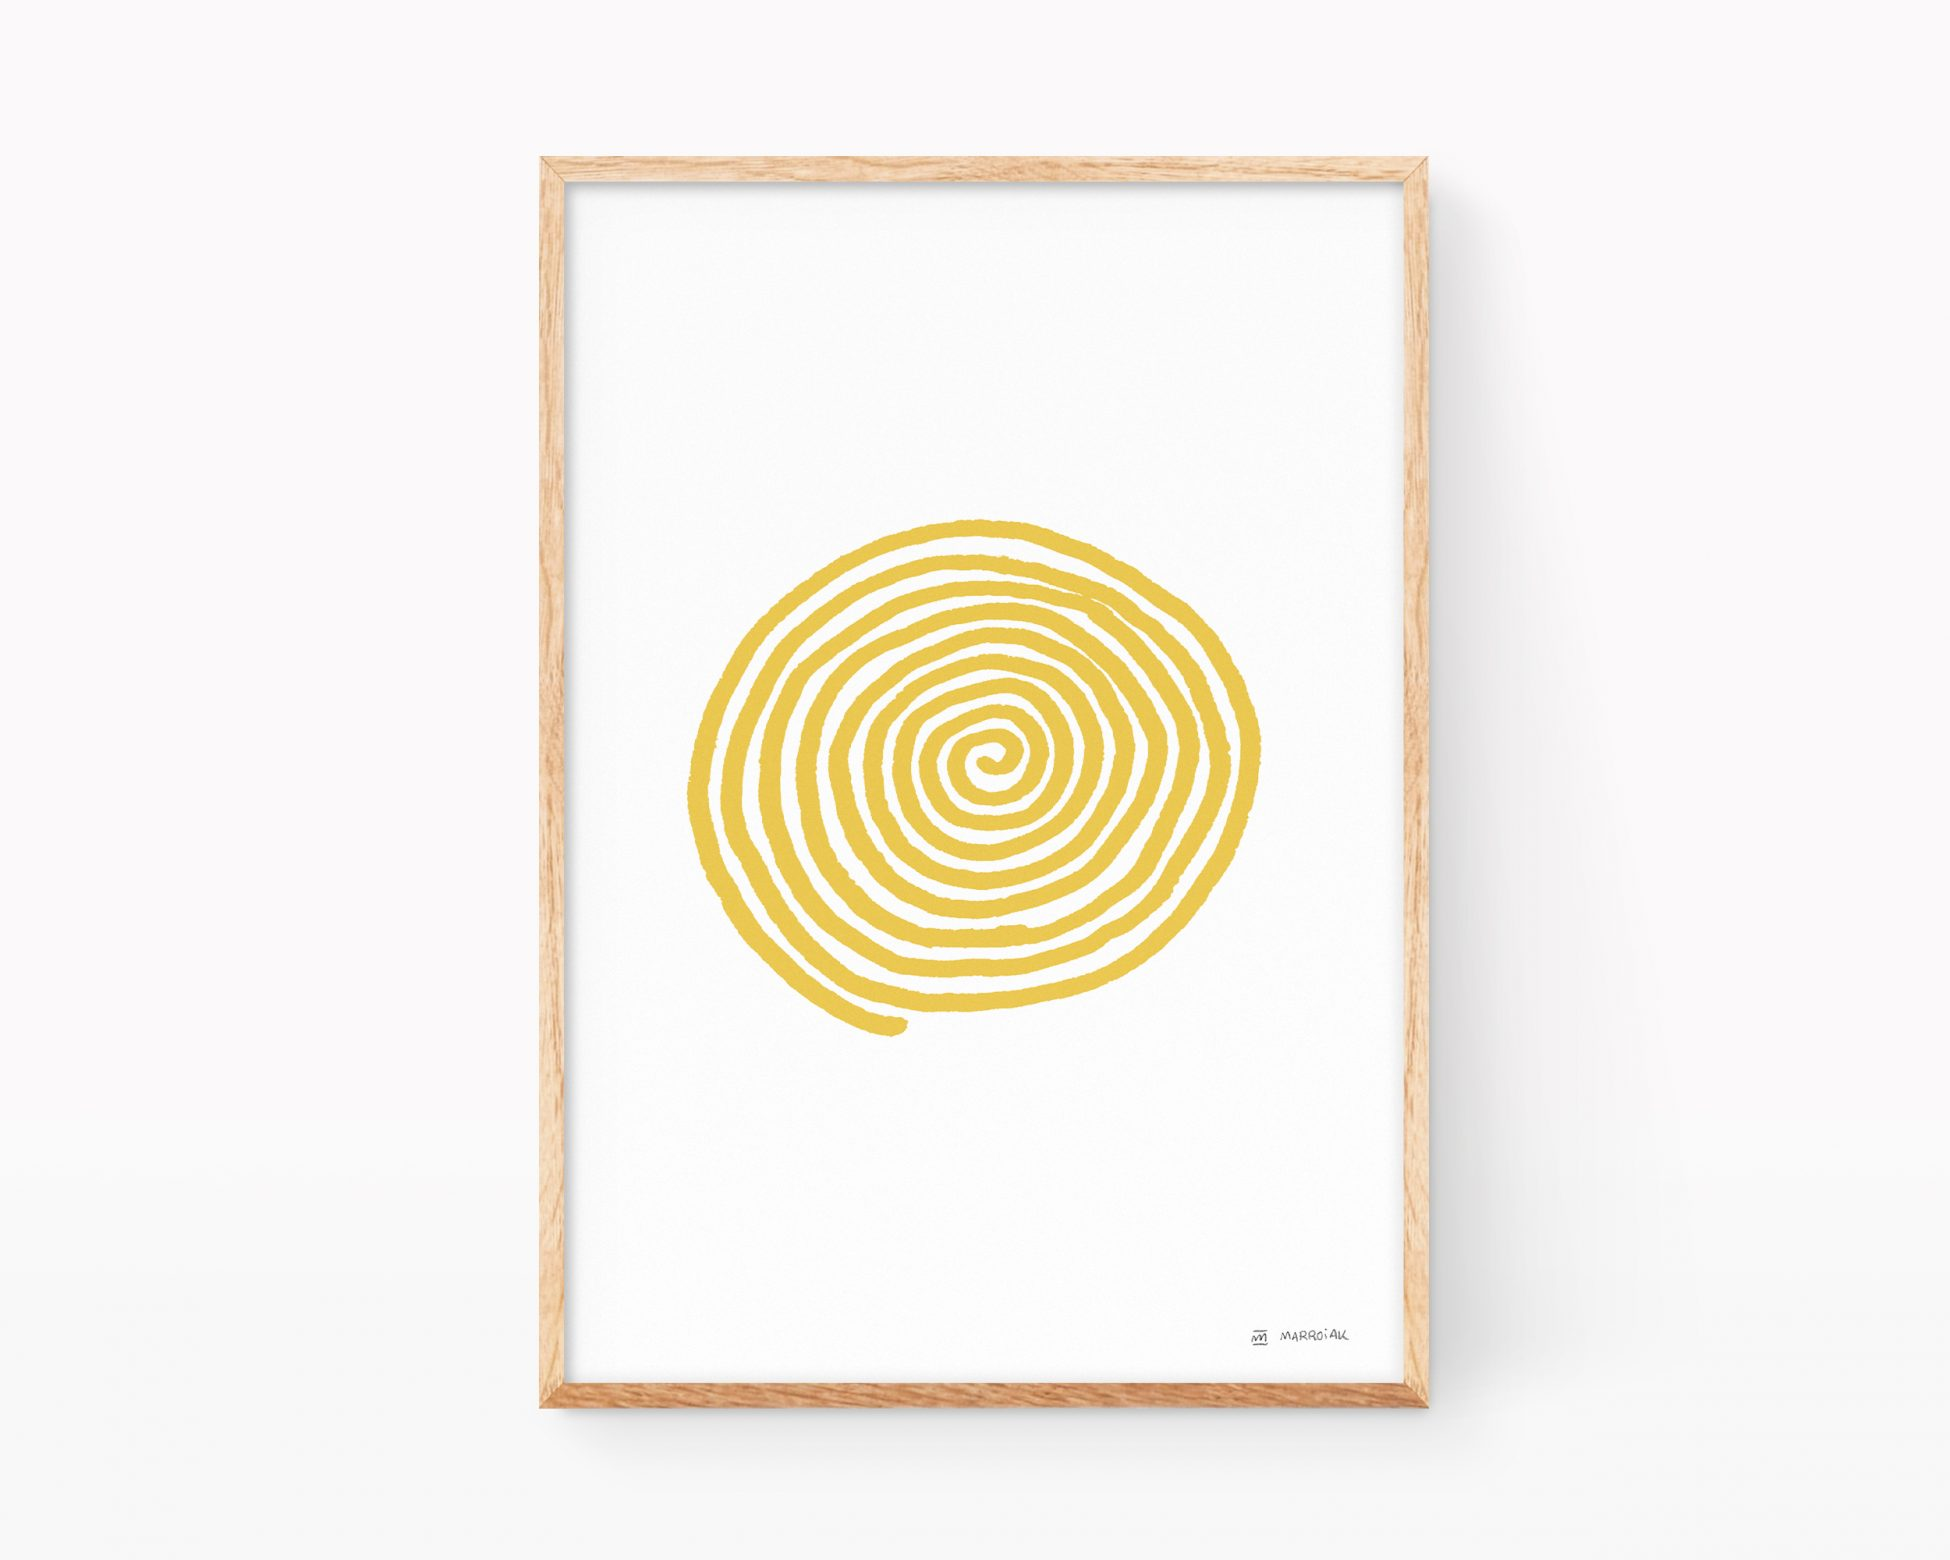 Wood fram with an illustration of a mustard colored spiral on white. Minimalist drawings to decorate.